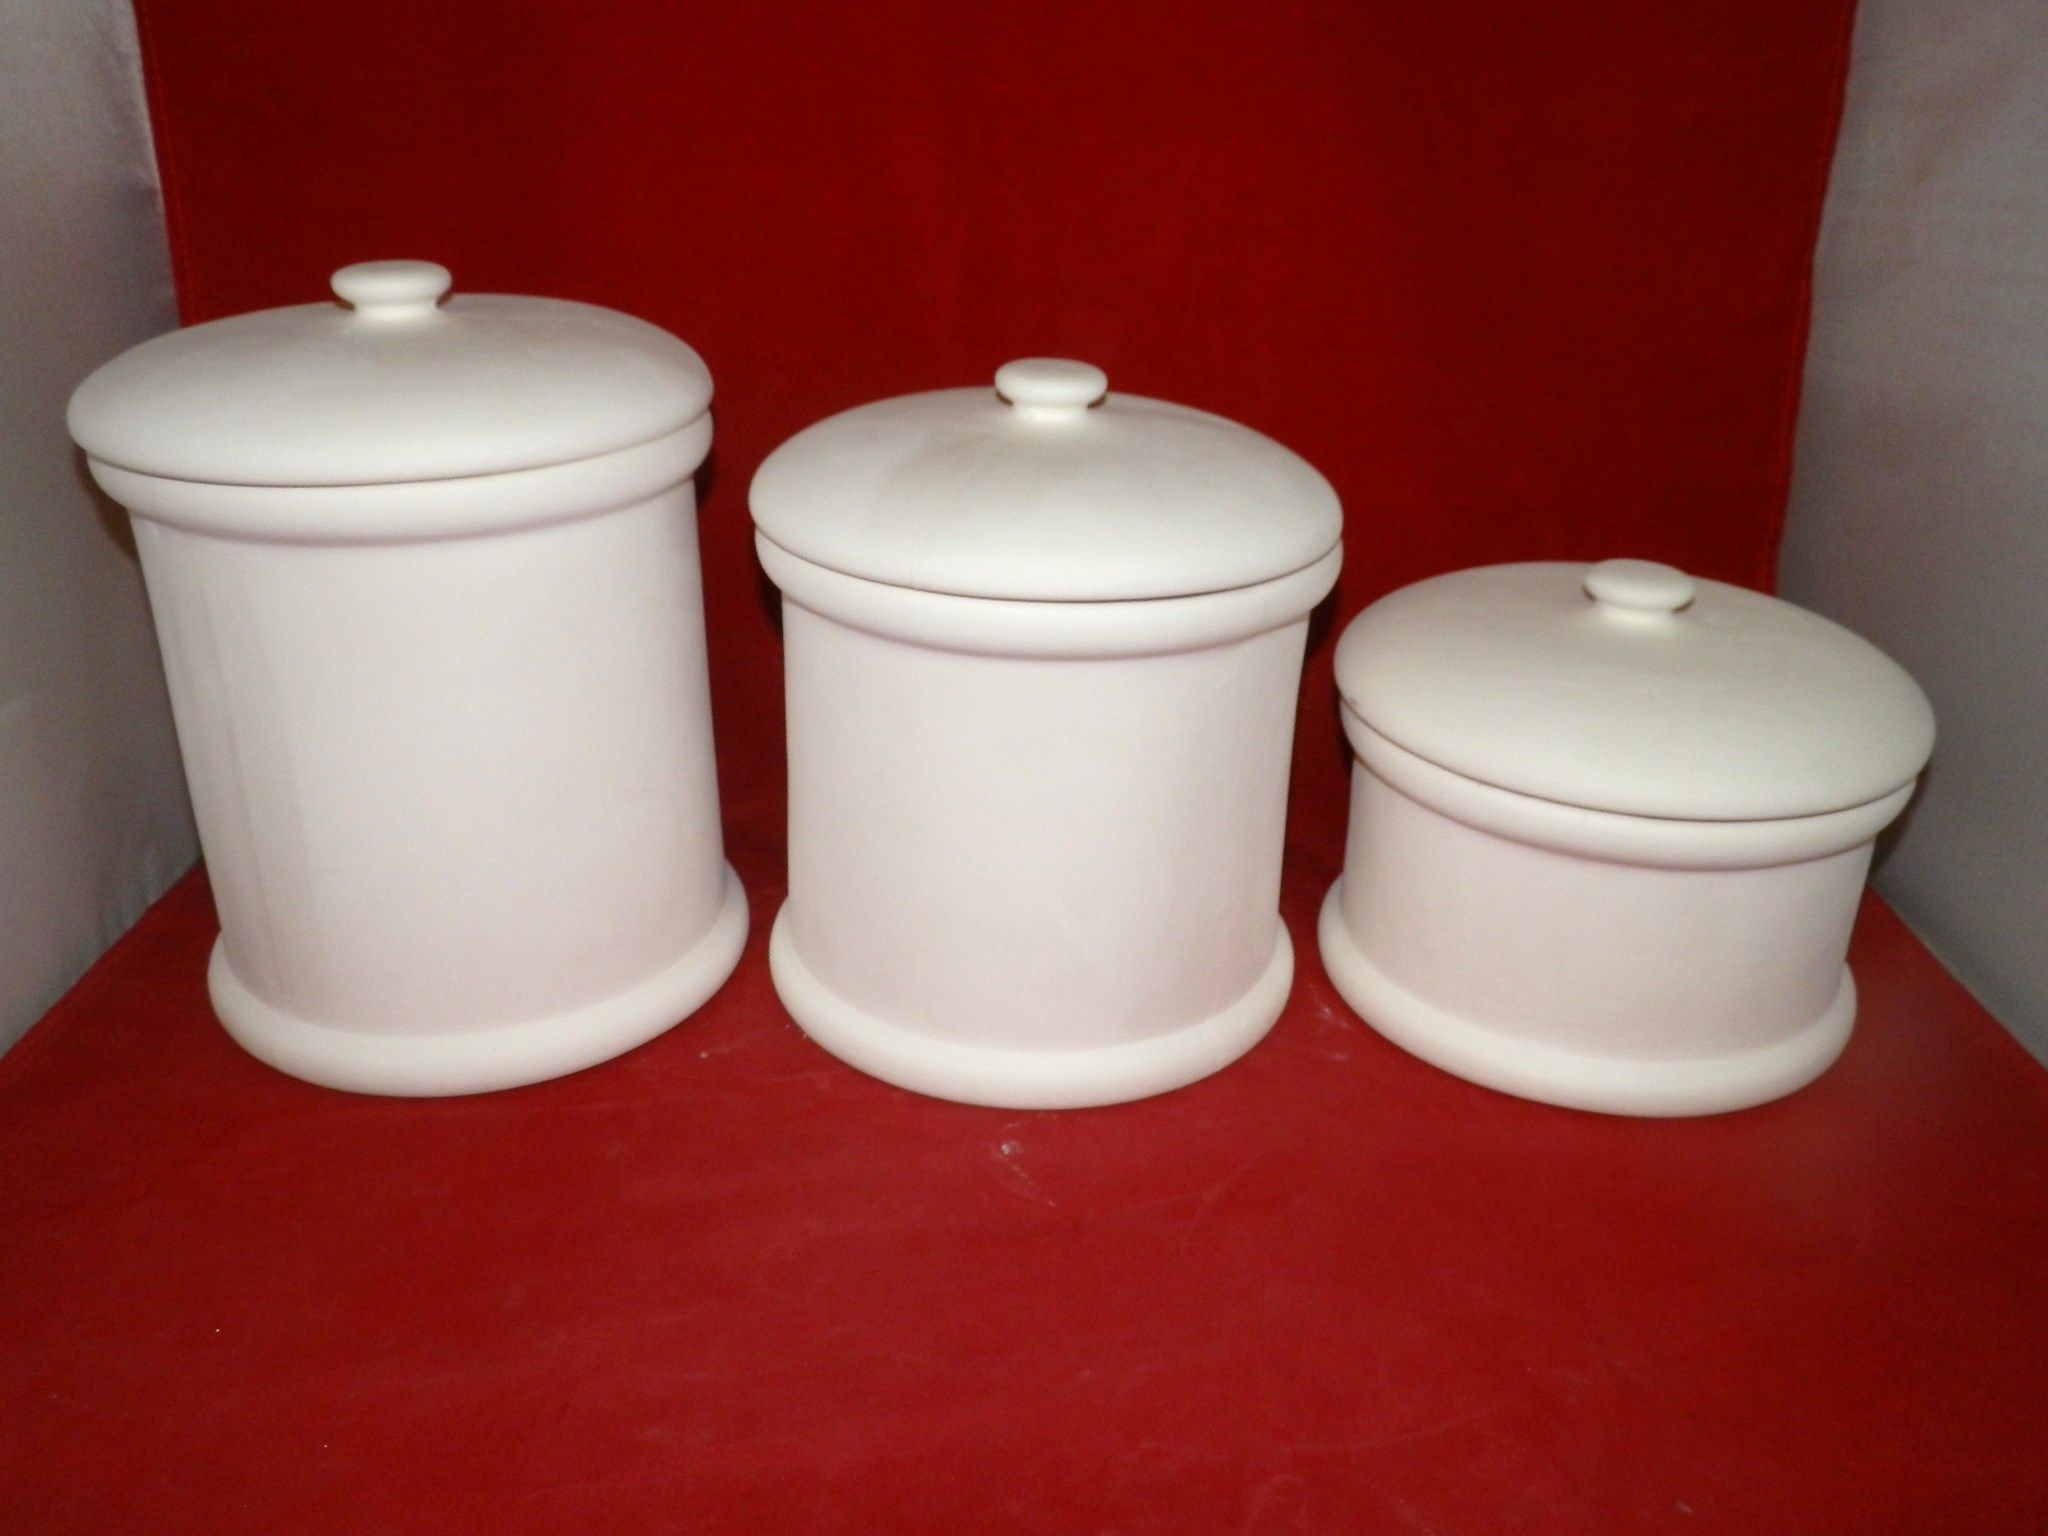 Kitchen Canisters Ceramic Power Strip 6 Piece Plain Canister Set Bisque Ready